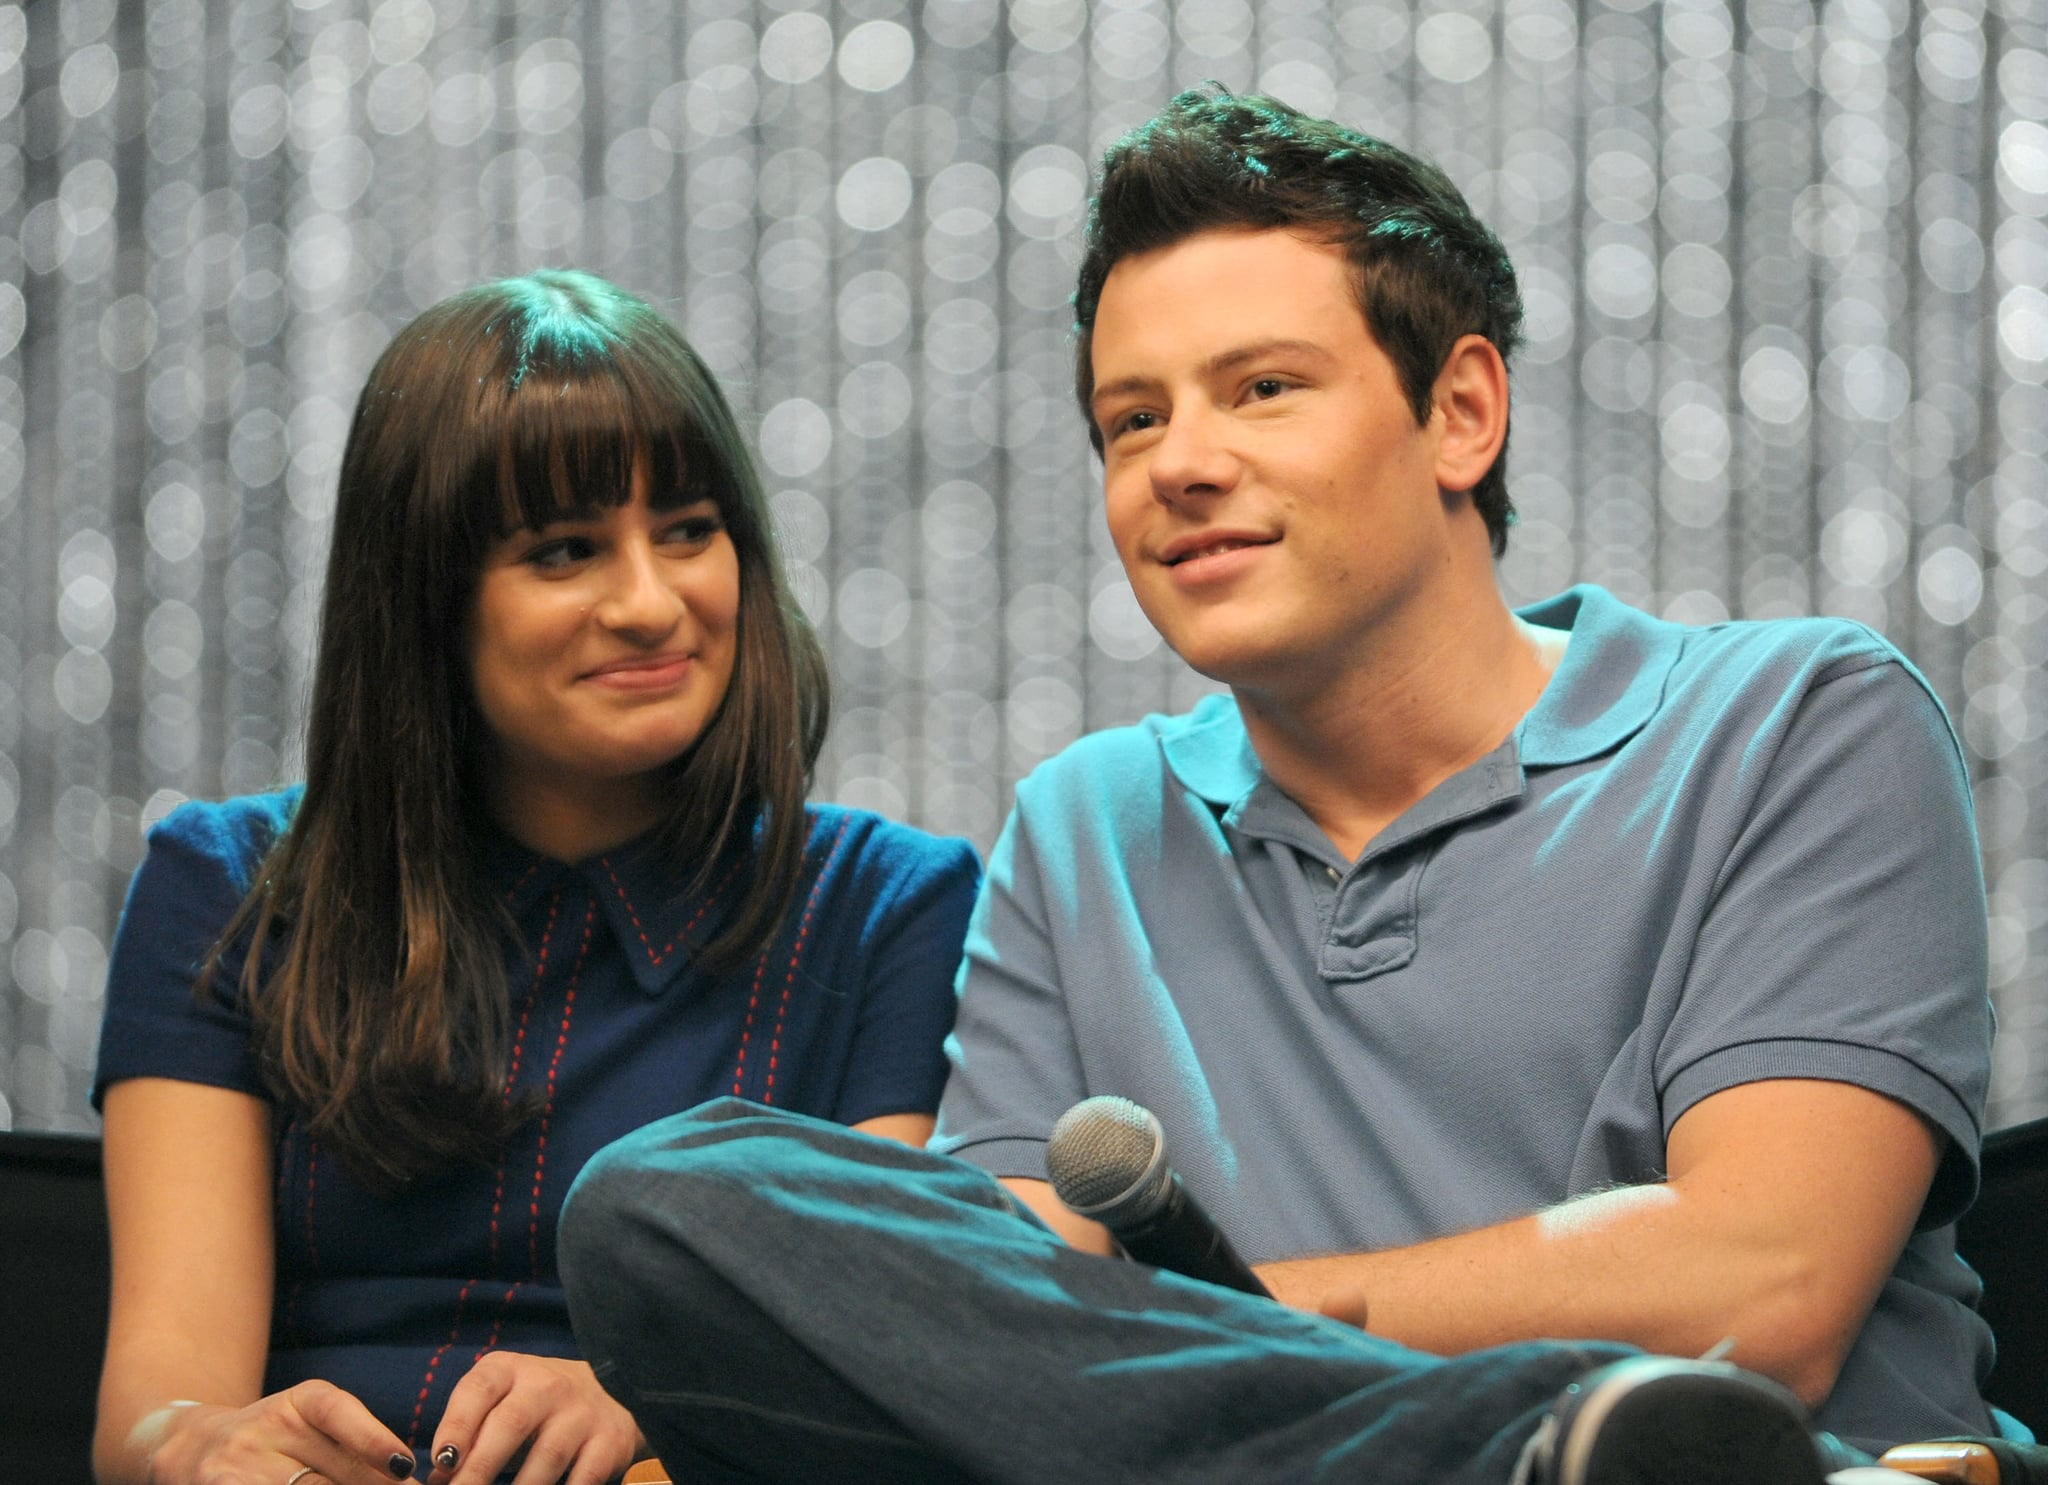 HOLLYWOOD, CA - OCTOBER 26:  Actors Lea Michele and Cory Monteith onstage during the Q & A following the 300th musical performance on